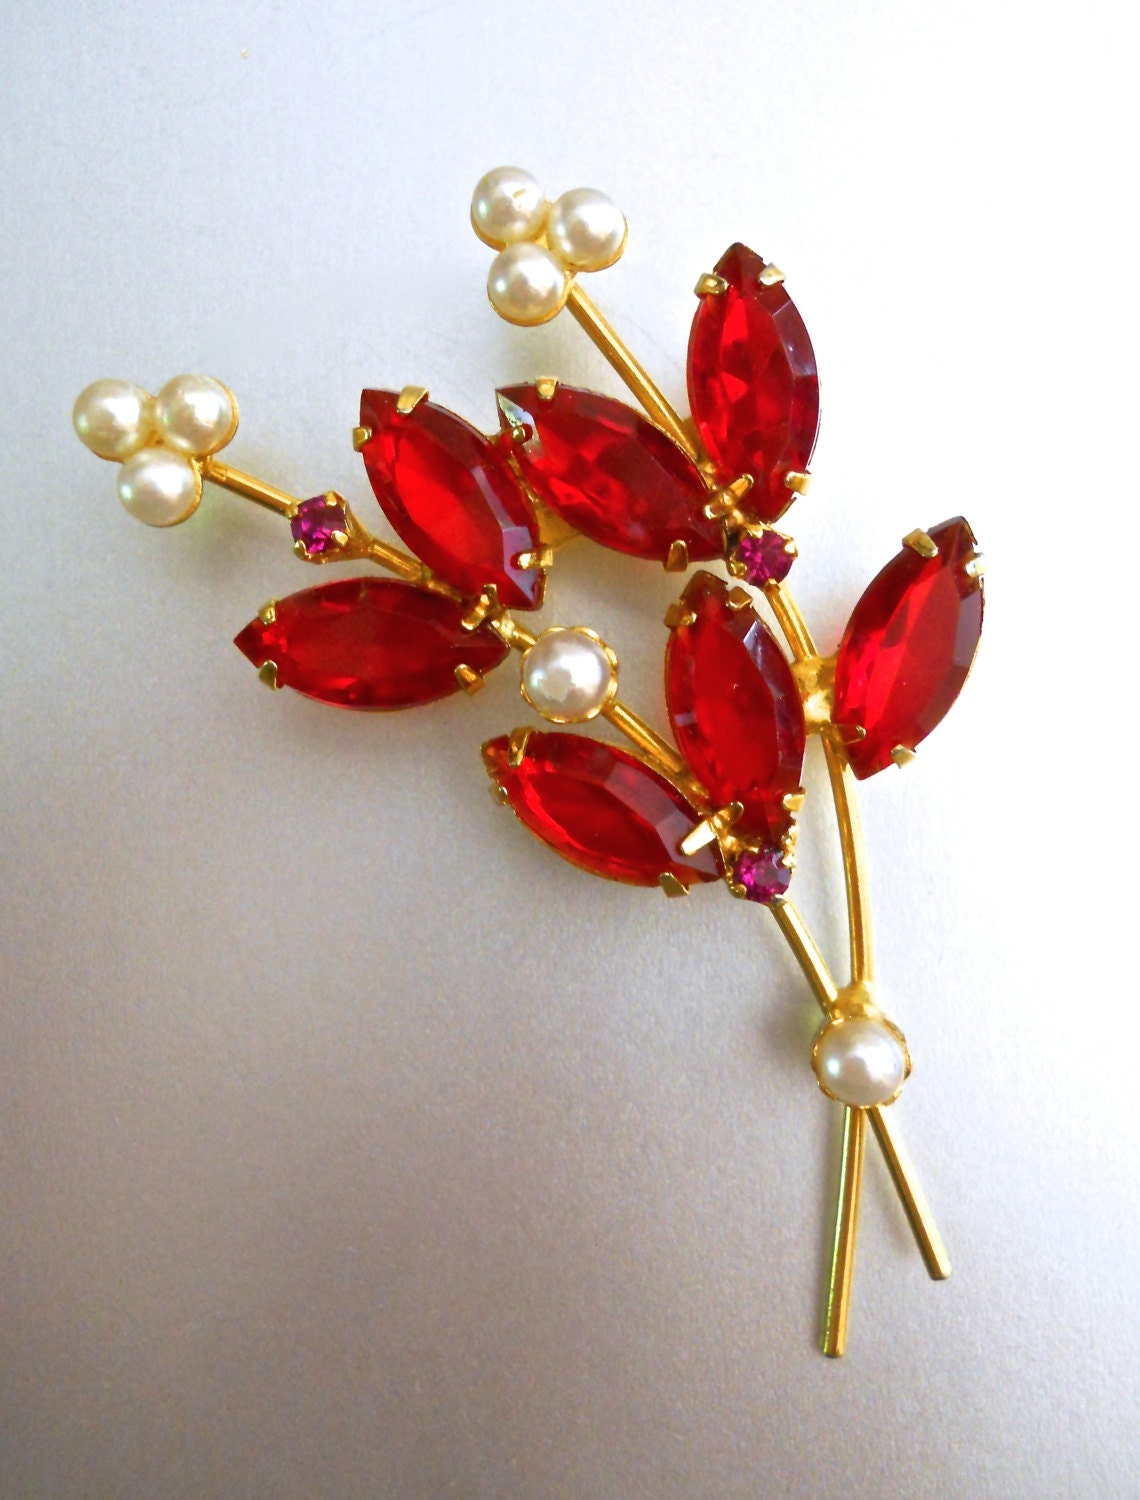 Sparkly Bling Nails: Red Rhinestone Flower Brooch Faux Pearls Marquis-Cut Floral